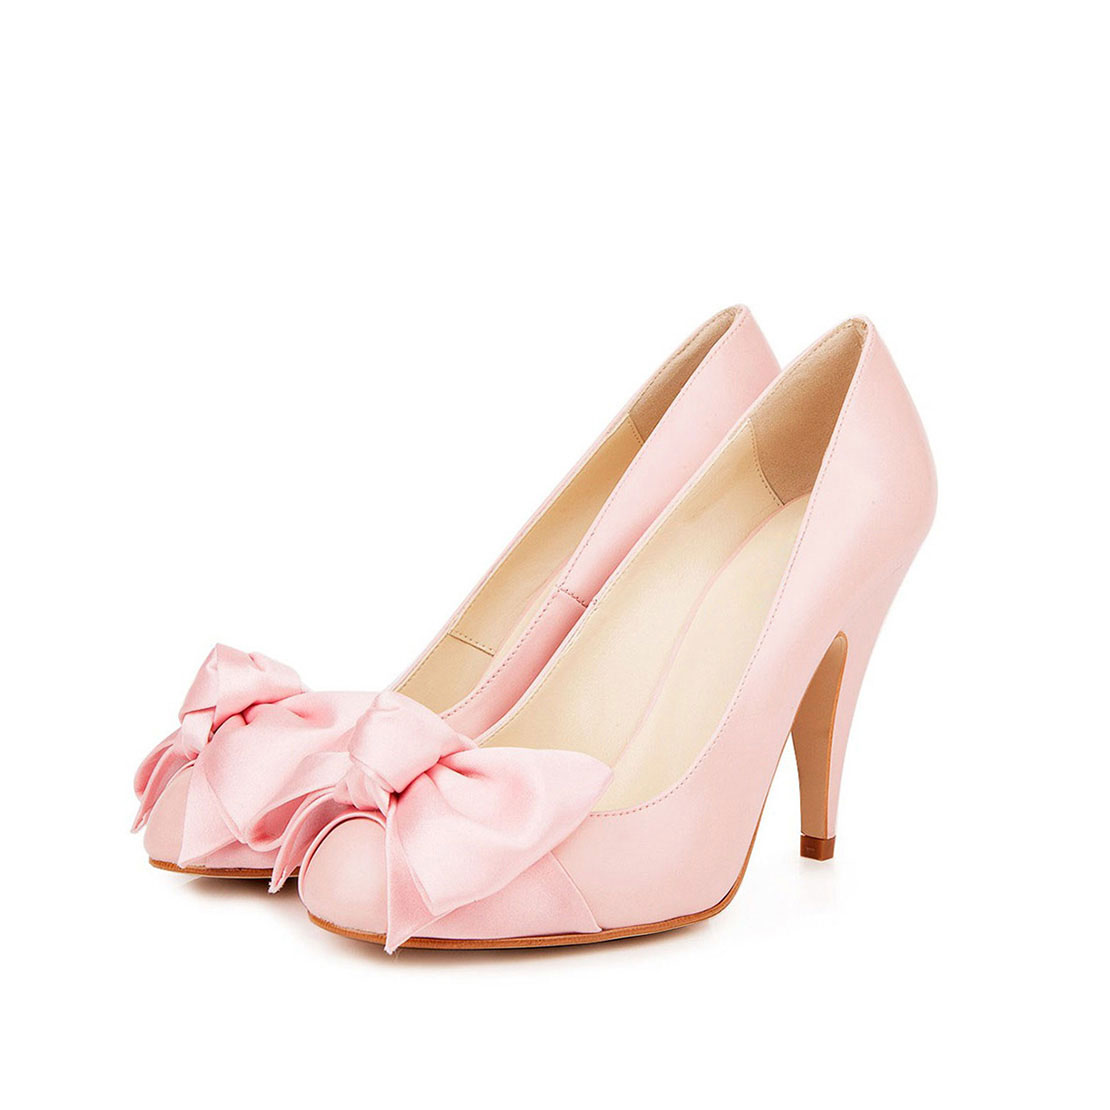 Butterfly design sweet style lady high heels pump shoes YB2046